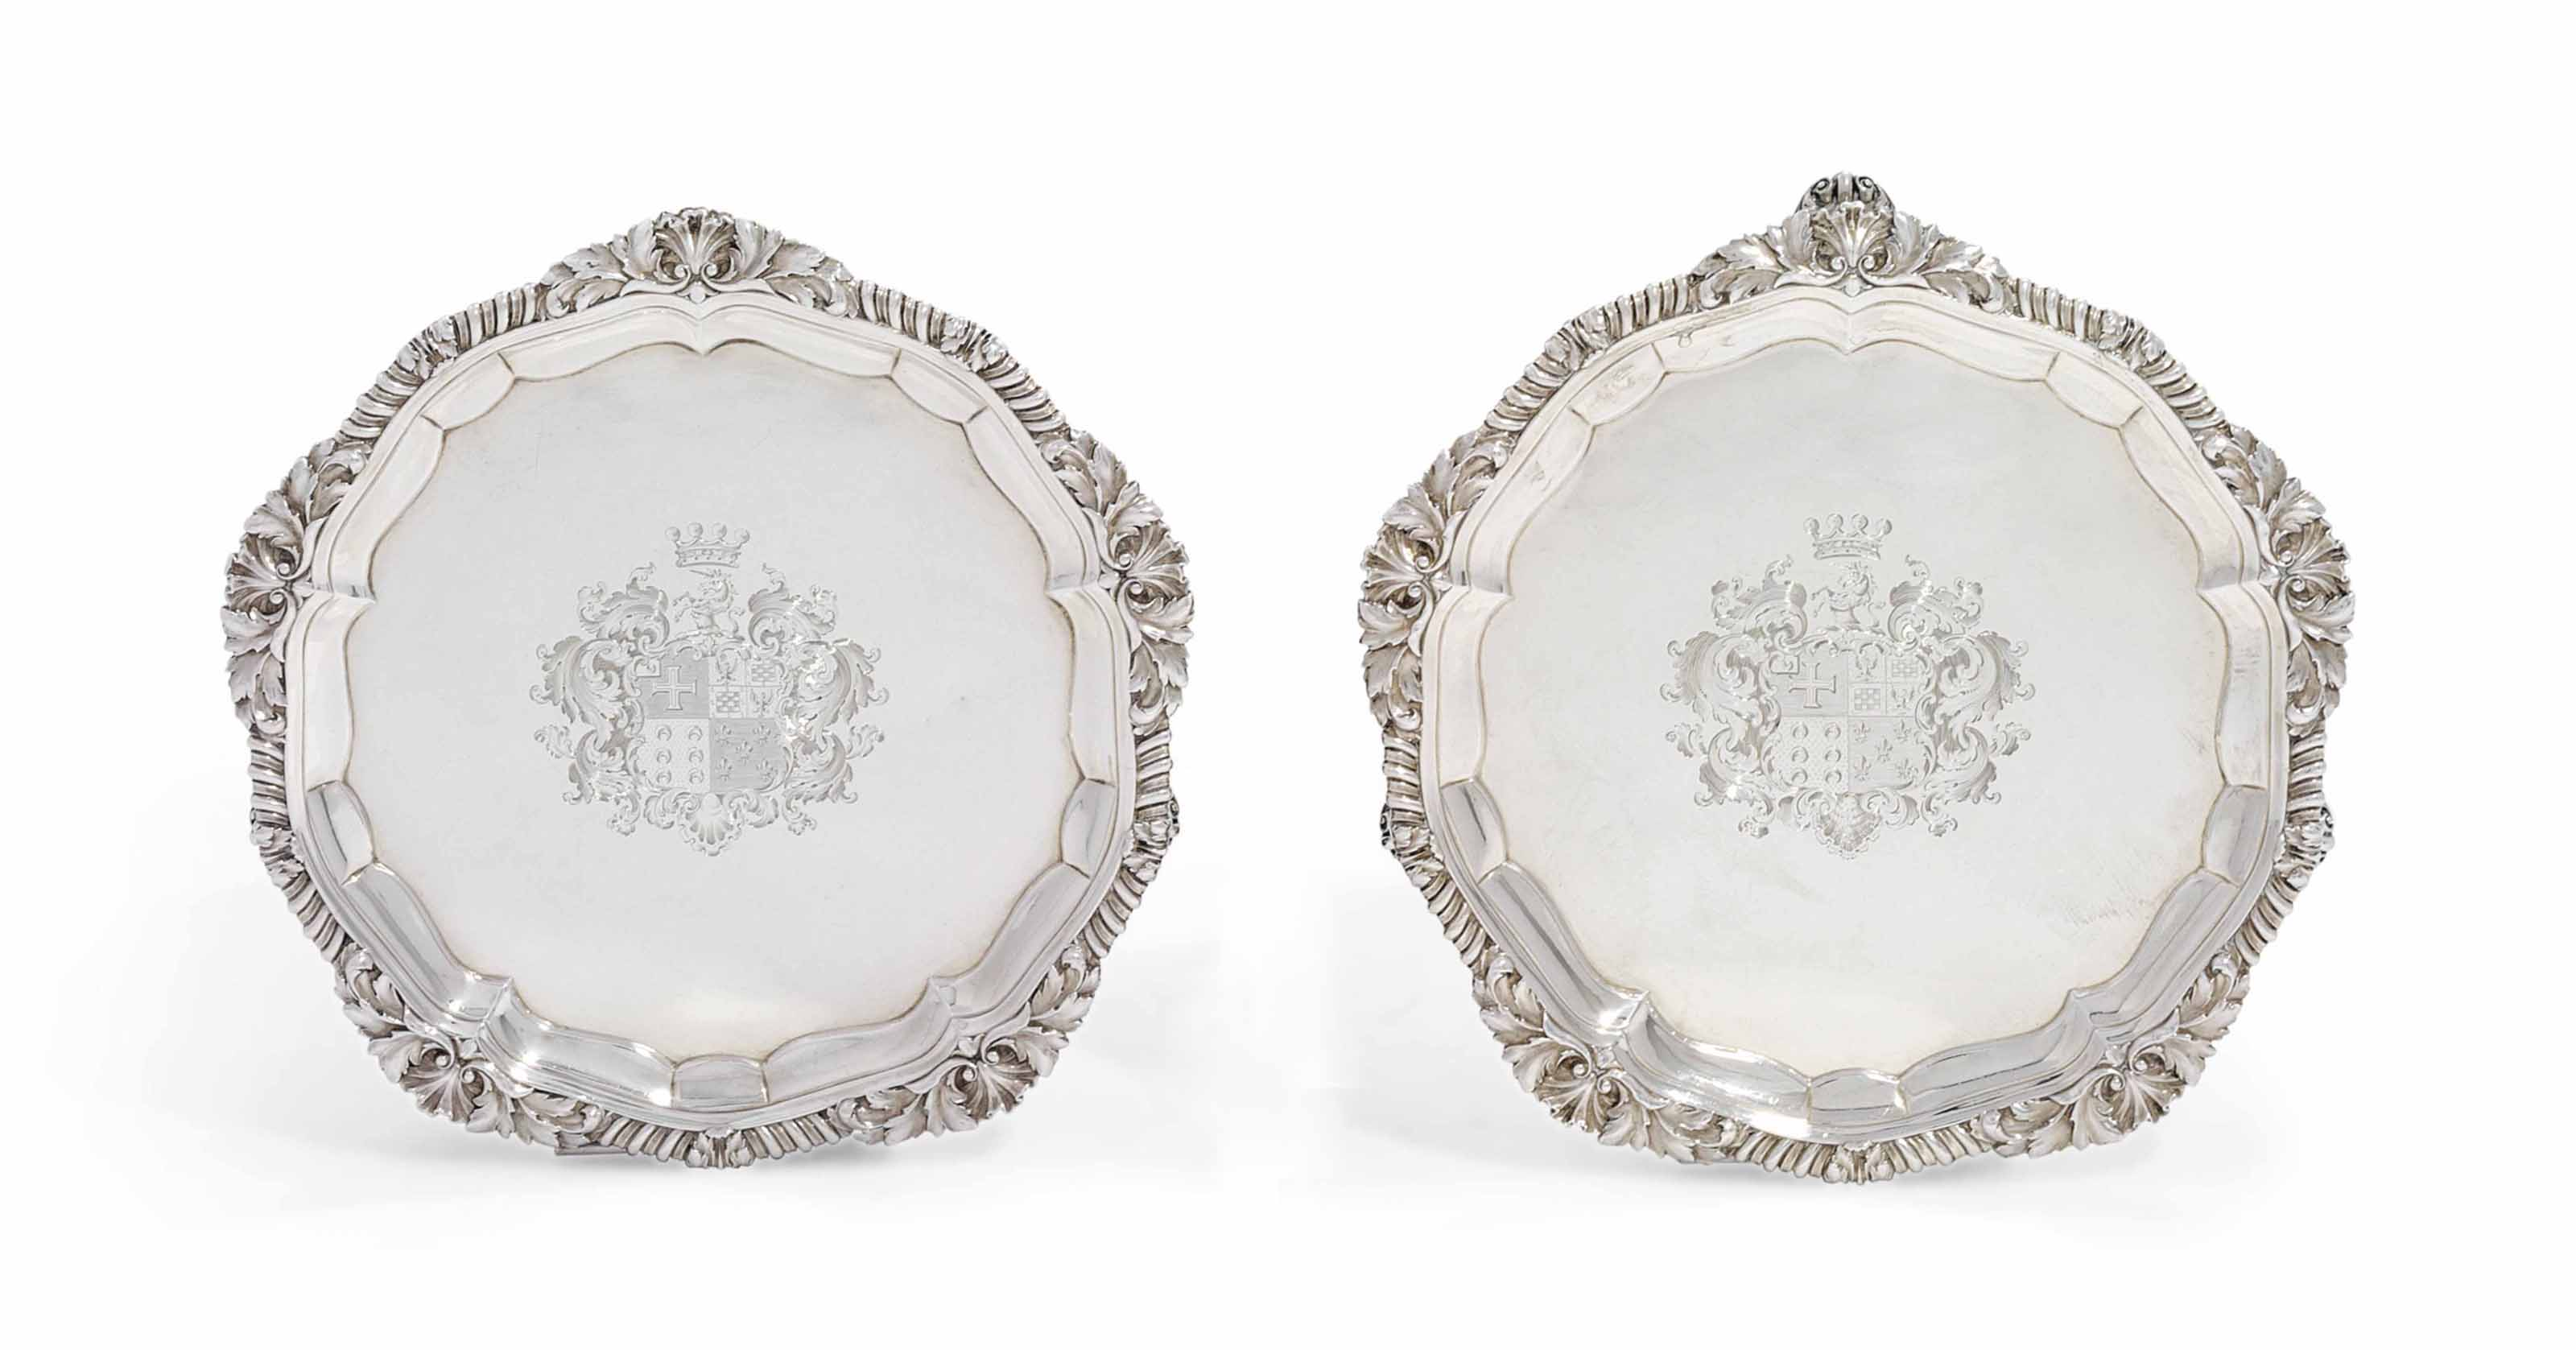 A PAIR OF GEORGE IV SILVER WAI